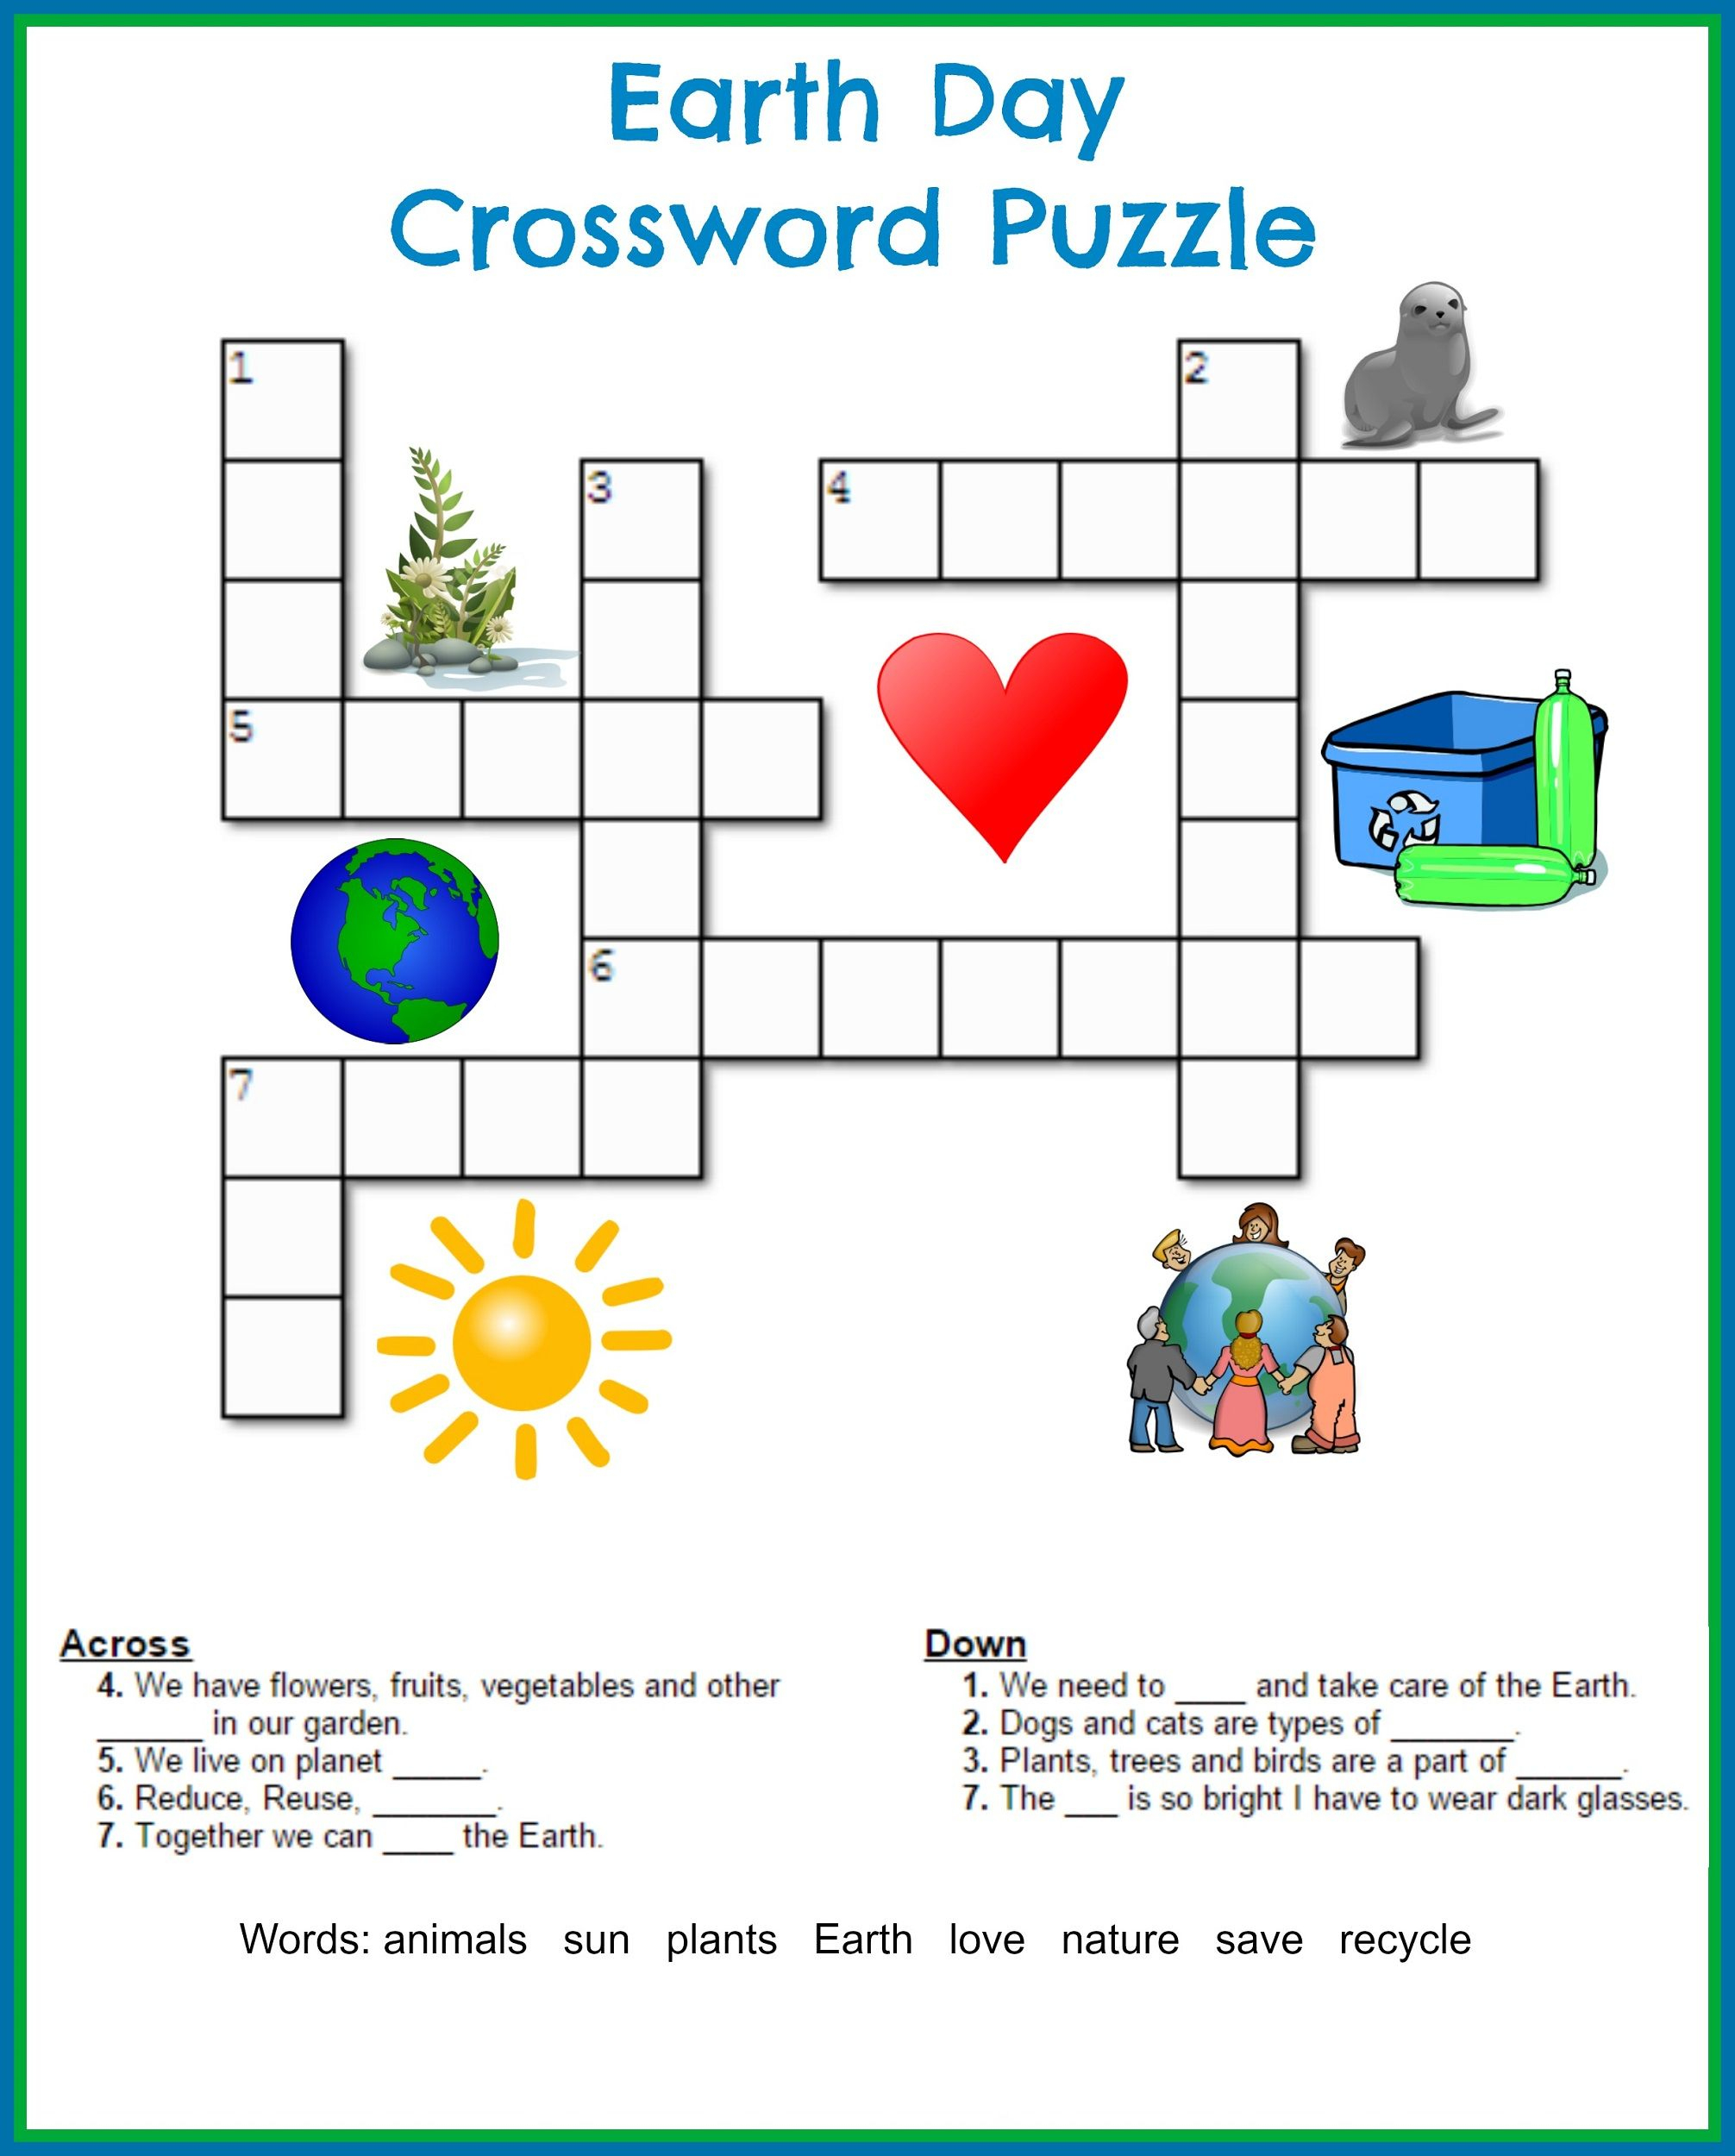 Printable Crossword Puzzles Kids | Crossword Puzzles On Earth - Printable Crossword Puzzle For Grade 2